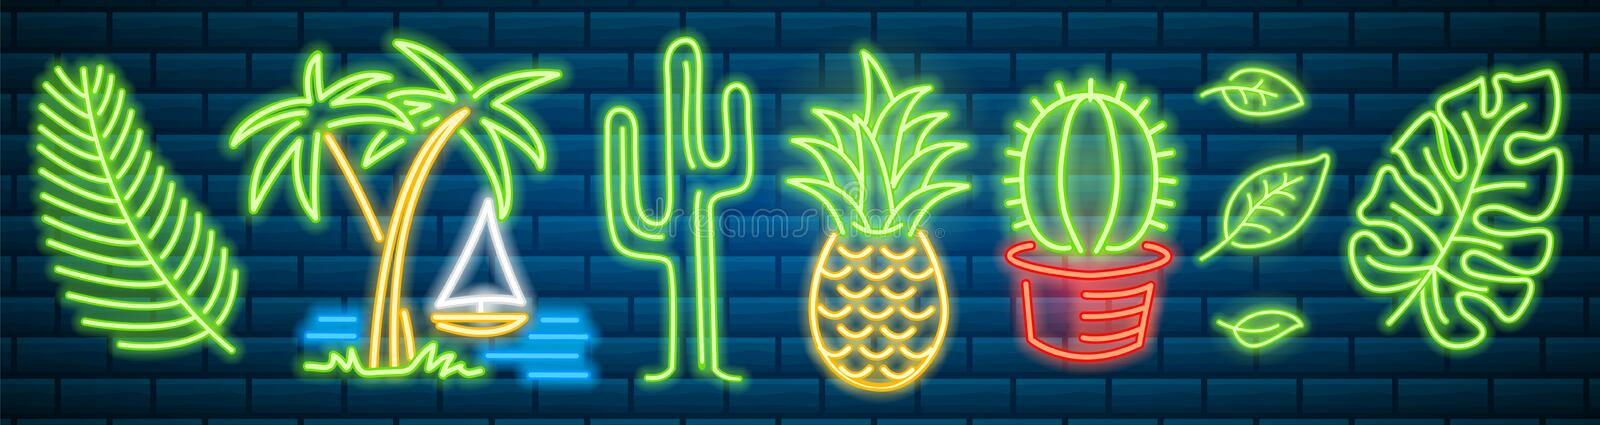 Set of fashion neon sign. Cactus and pineapple, tropical plants, palm trees and leaves. Night bright signboard, Glowing vector illustration